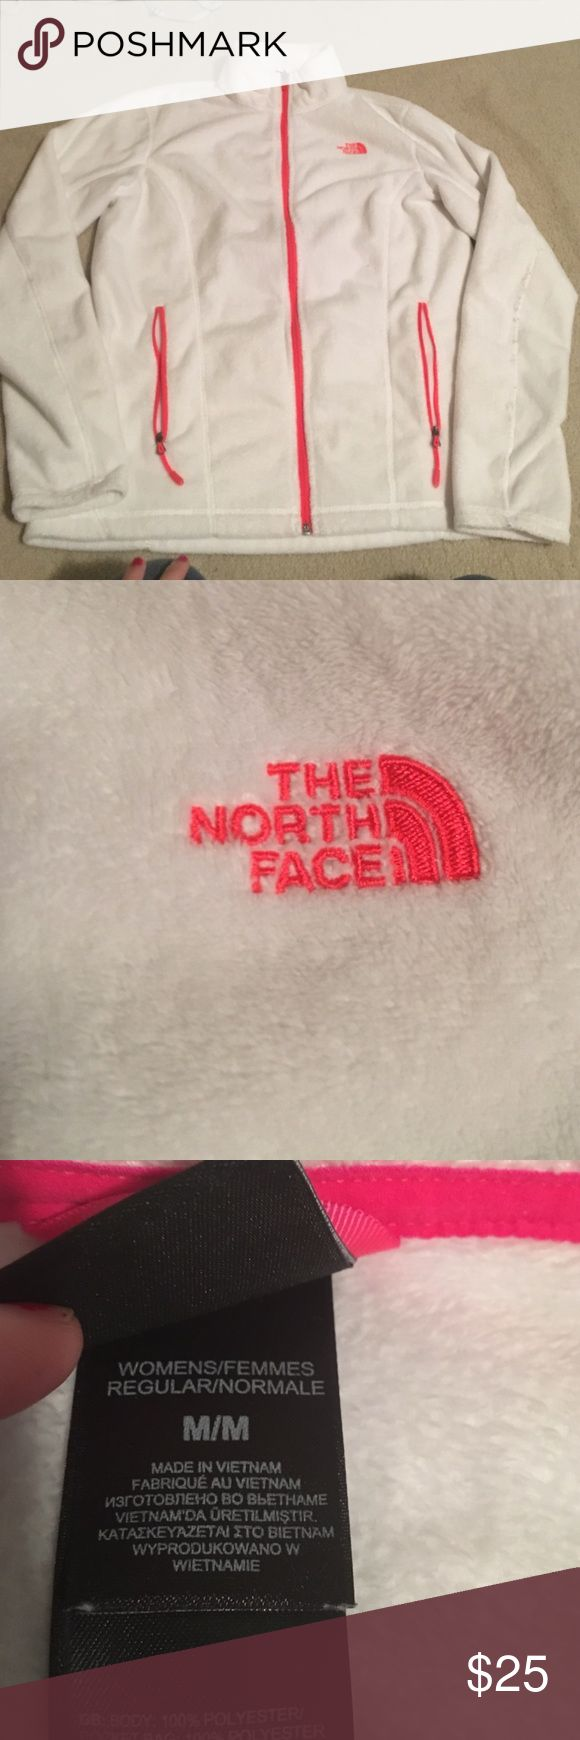 Medium white north face jacket Hoodless Good condition. Two pockets. Pink and white. Tops Sweatshirts & Hoodies